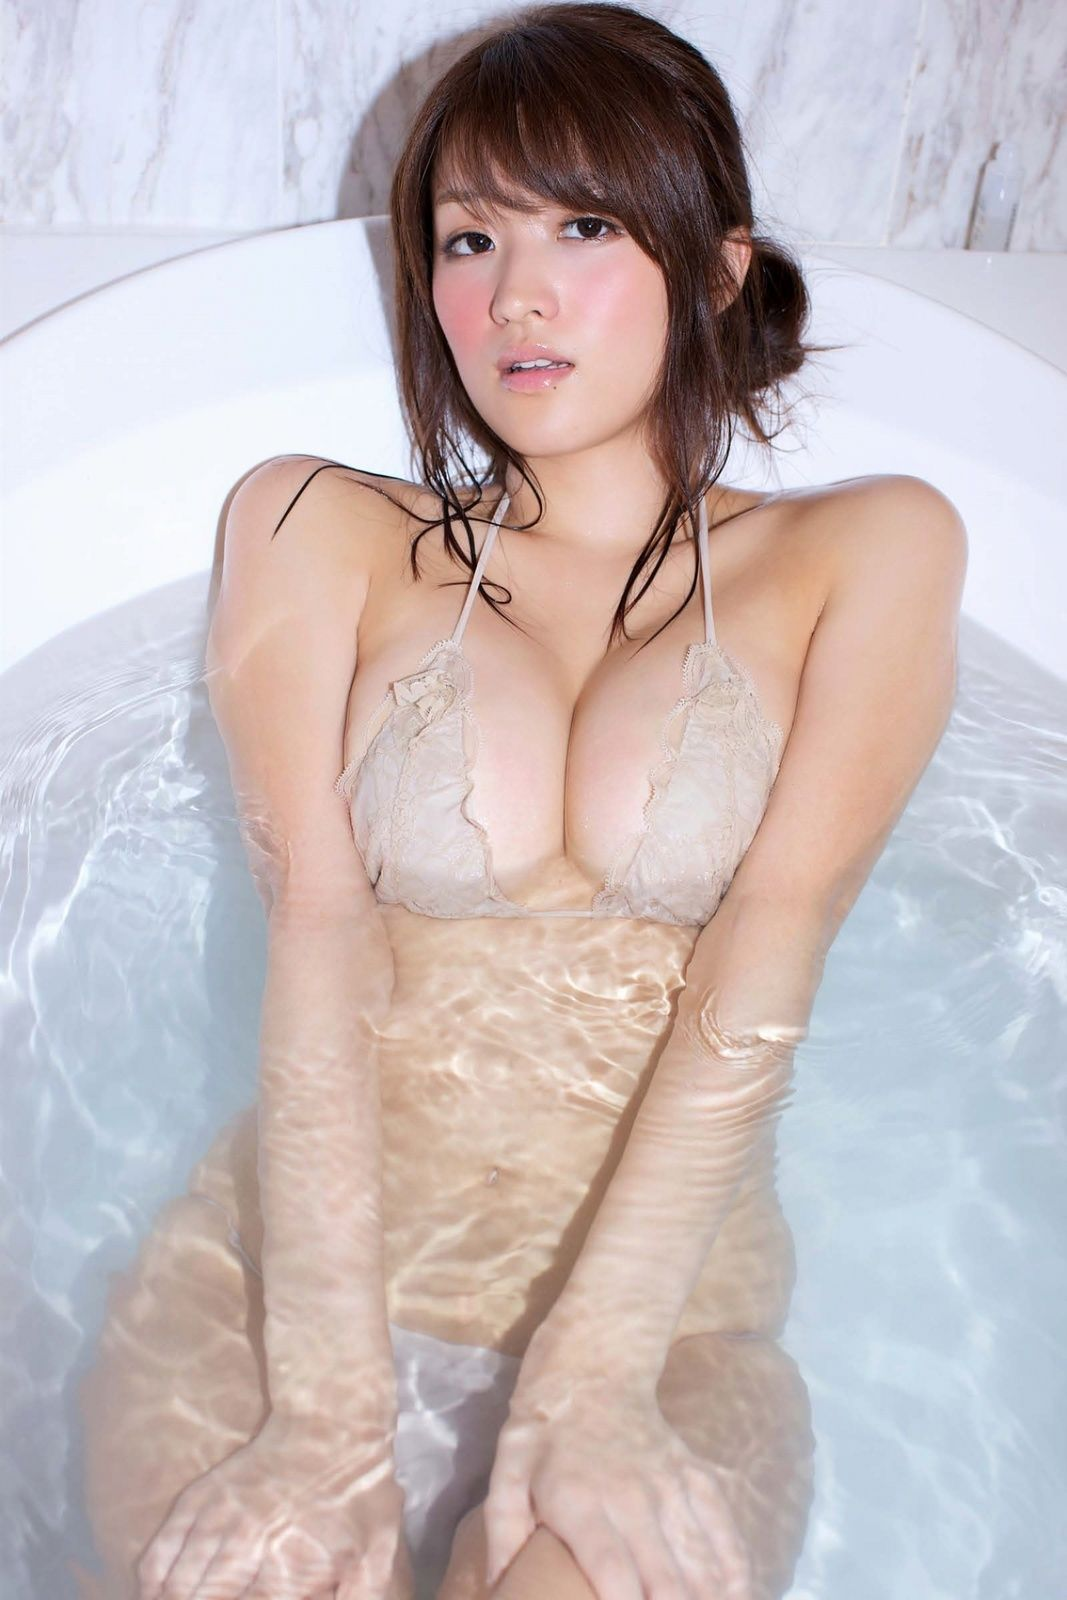 japan girl #beautiful #woman #sex #sexy #hot #body #beautiful #cute